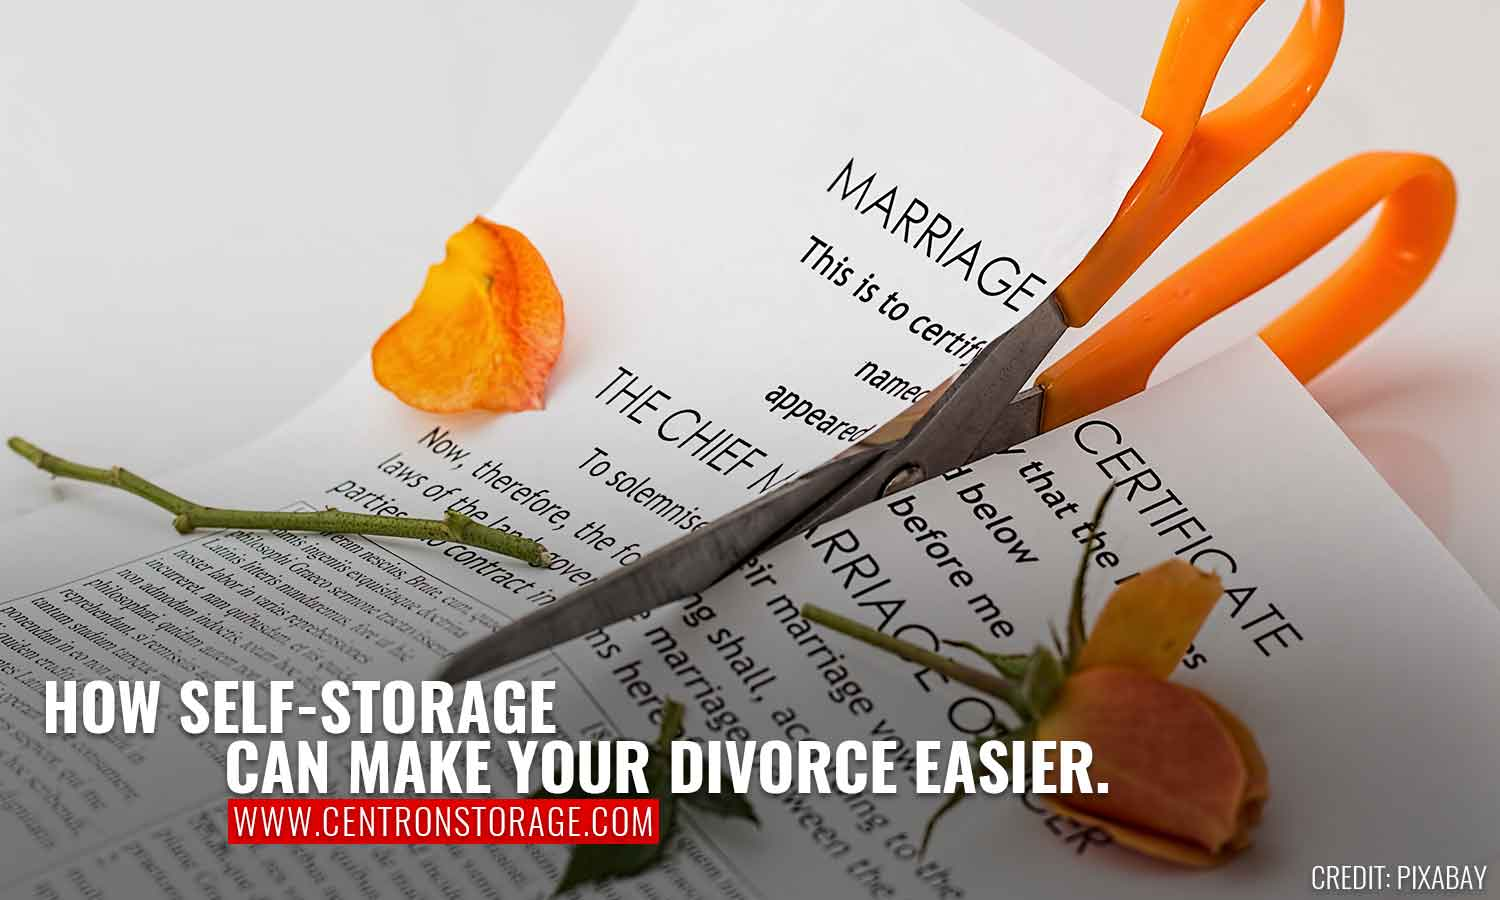 How Self-Storage Can Make Your Divorce Easier.